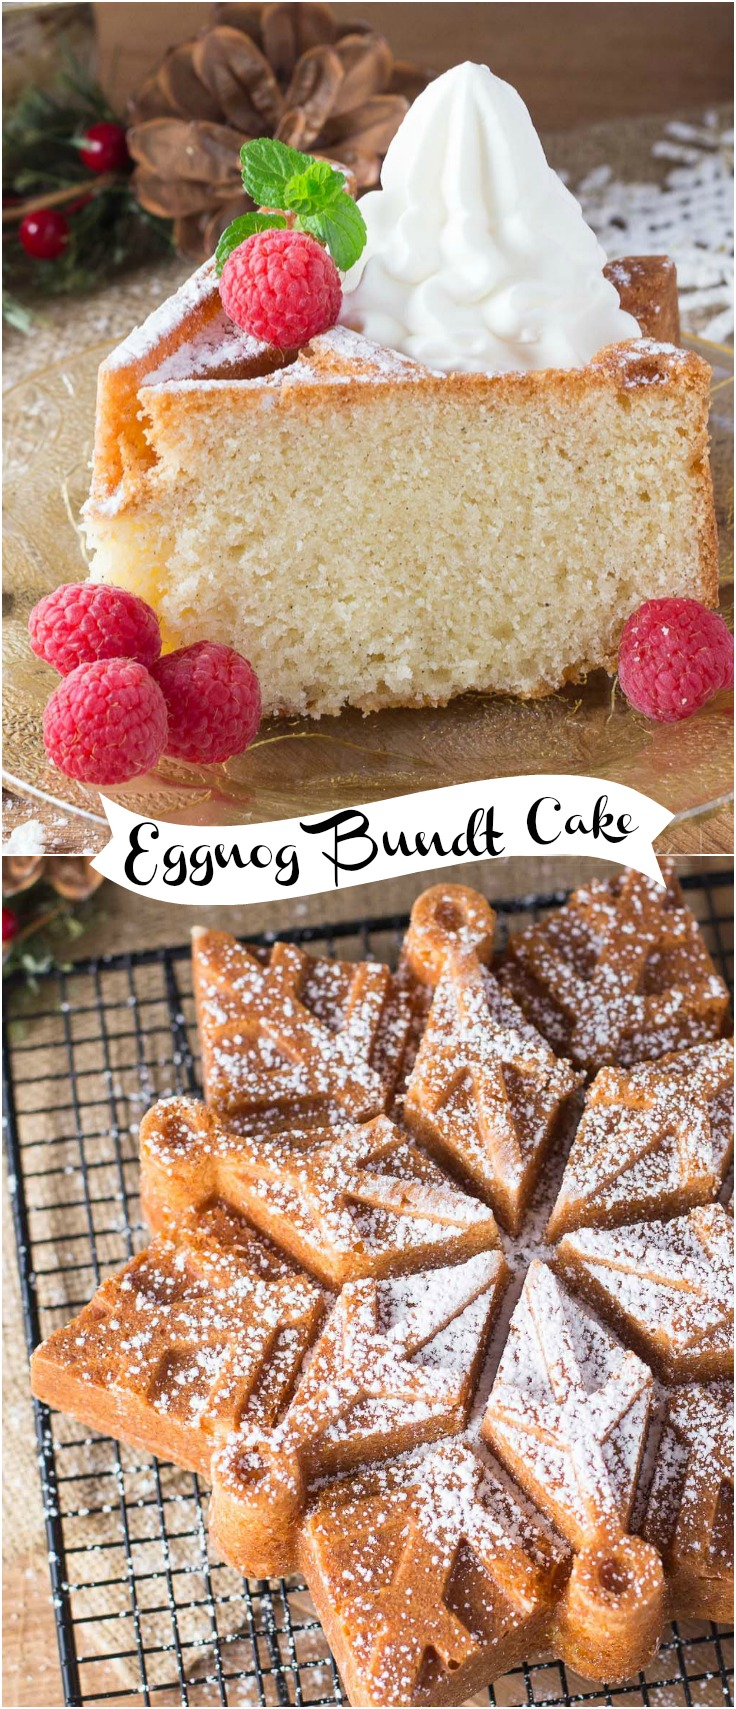 Beautiful Eggnog Bundt Cake combines the outstanding flavors of eggnog, cinnamon and nutmeg. A festive cake that is moist and delicious. via @artandthekitch